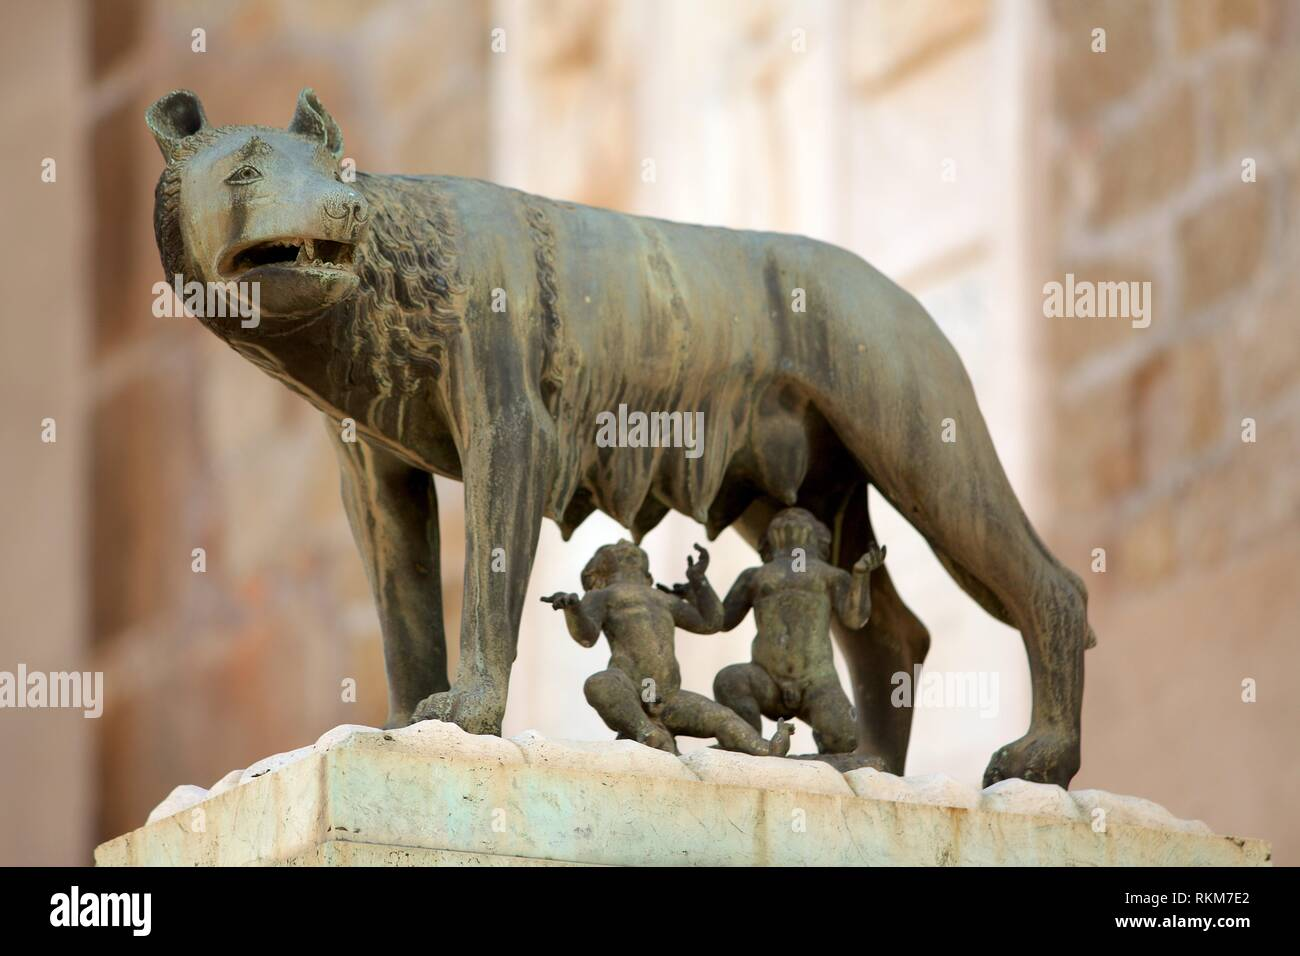 Sculpture of the capitoline she-wolfe of the legend of Romulus and remus in the Piazza Campidoglio. Rome. Italy. - Stock Image